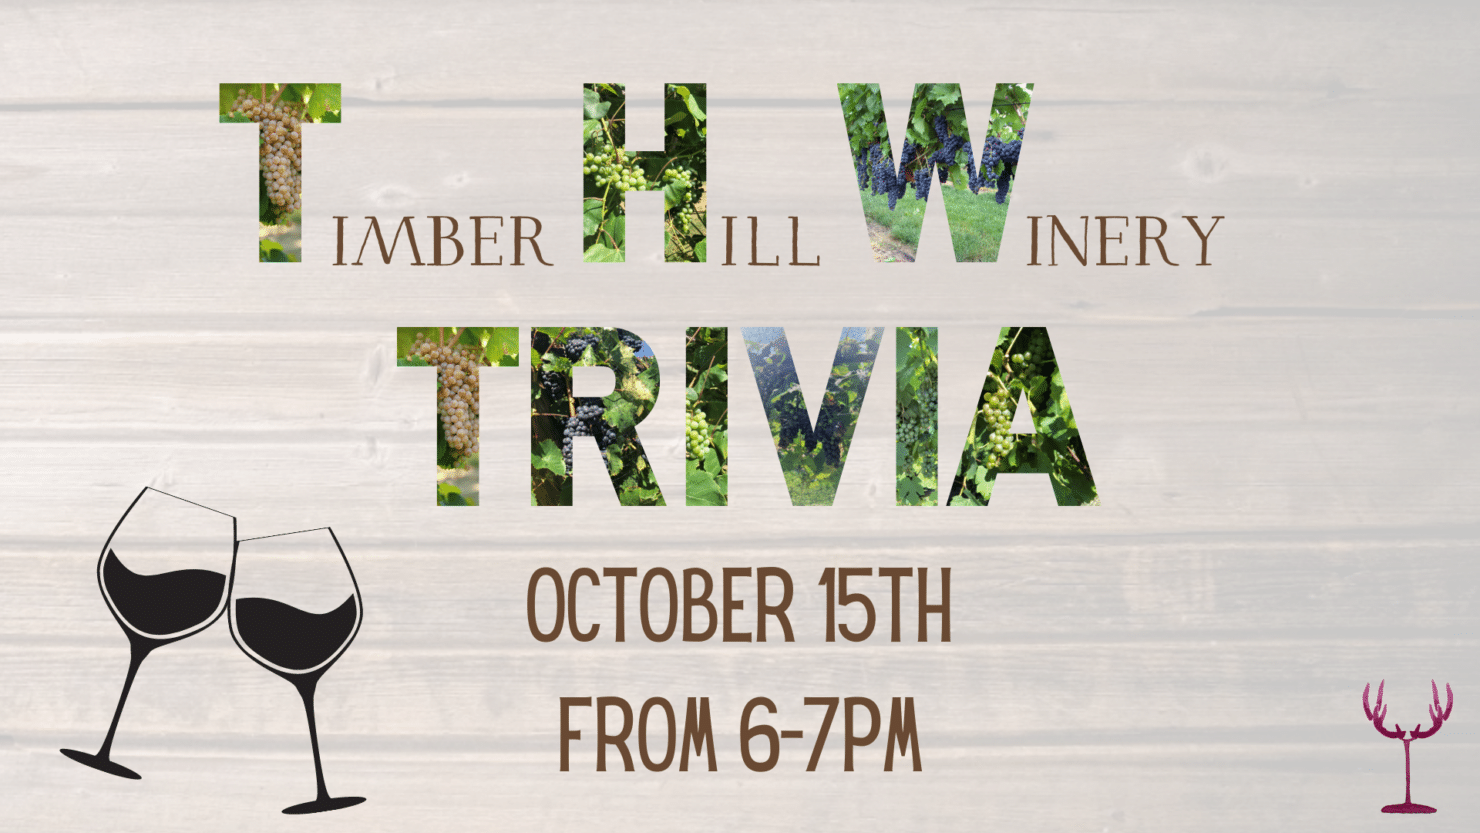 Timber Hill Winery 5th Anniversary Trivia